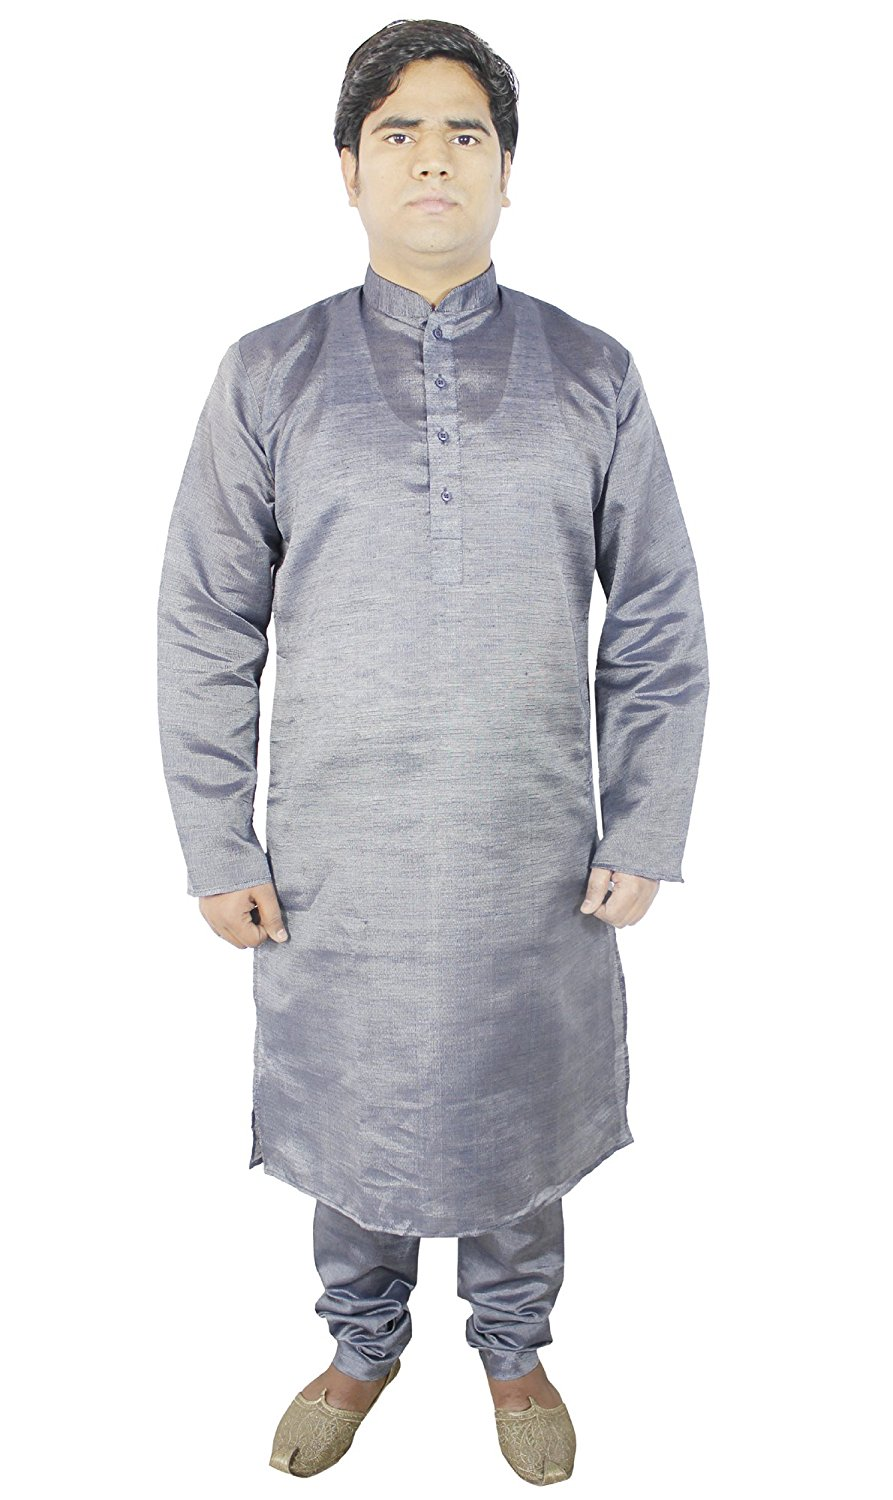 8285f98cdd Get Quotations · Kurta Sherwani Groom Wear Kurta Pajama Set for Wedding  Engagement Men Gift -M